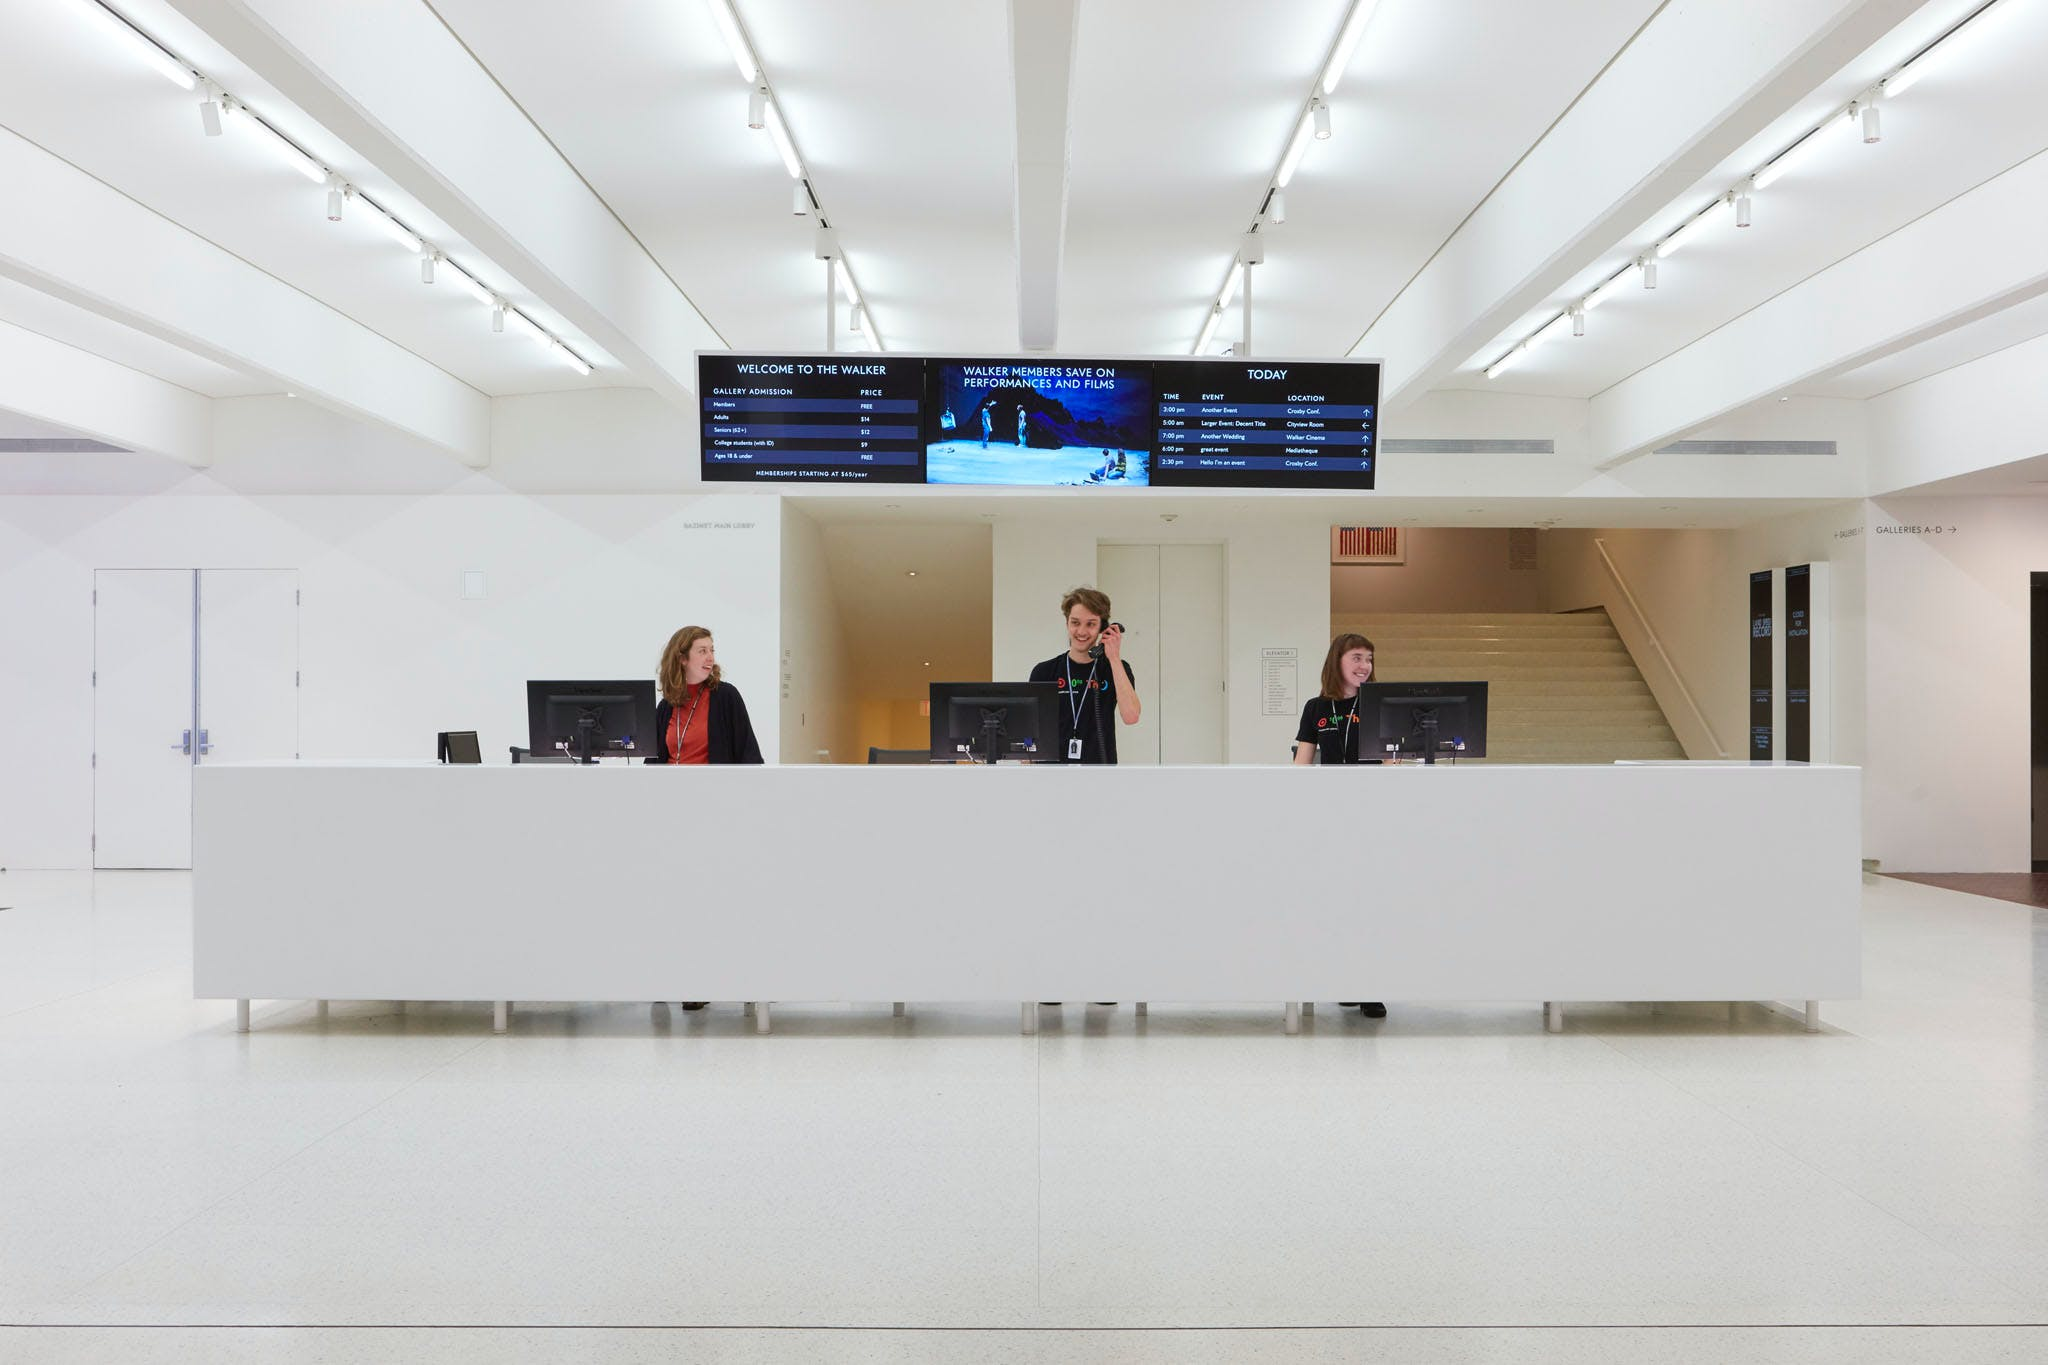 Walker Staff at Main Lobby Desk